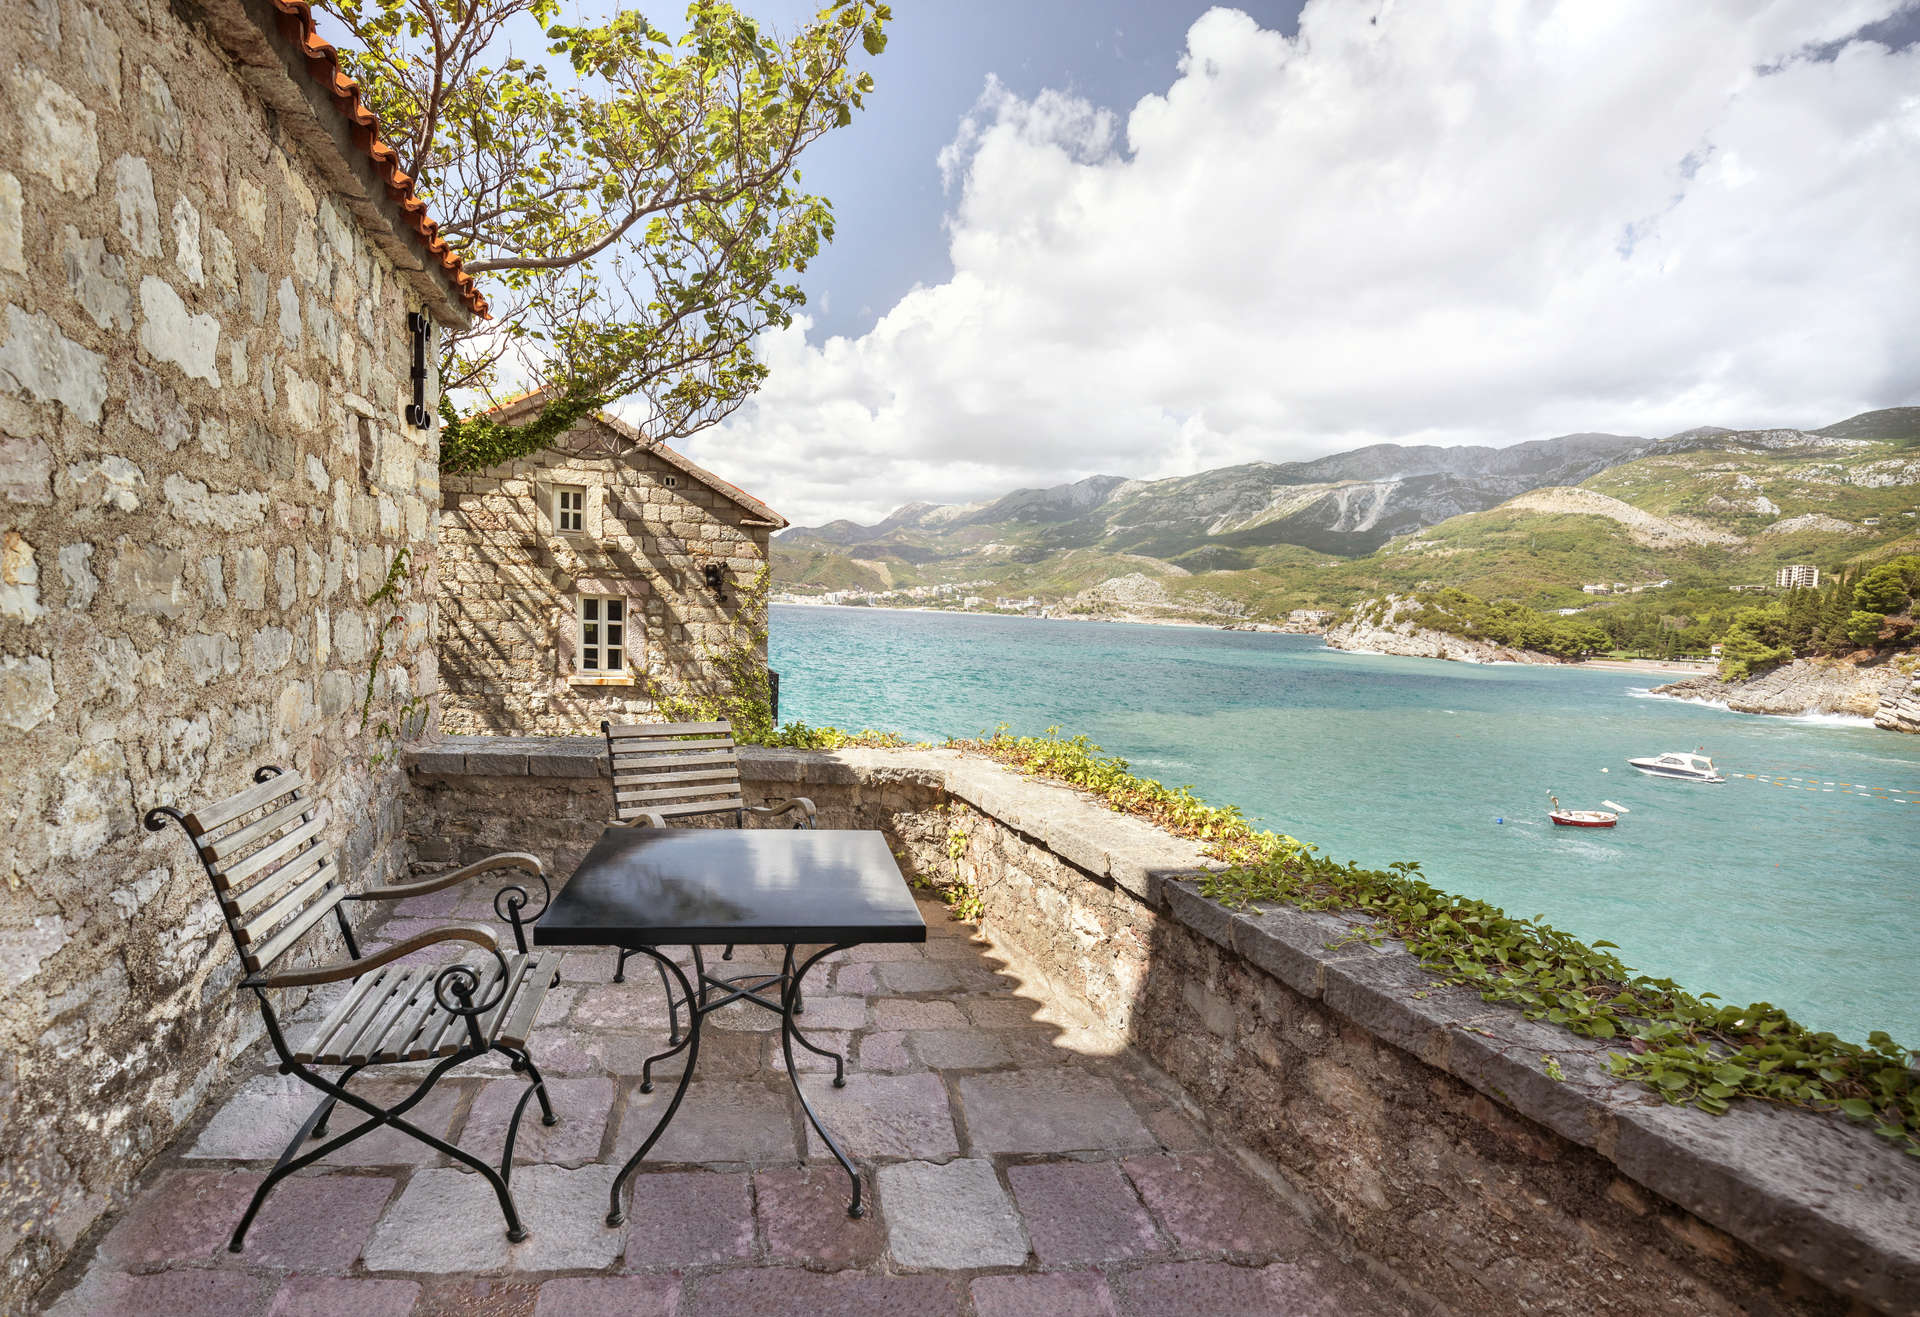 Luxury vacation rentals europe - Montenegro - Aman sveti stefan - St. Sava Cottage - Image 1/7